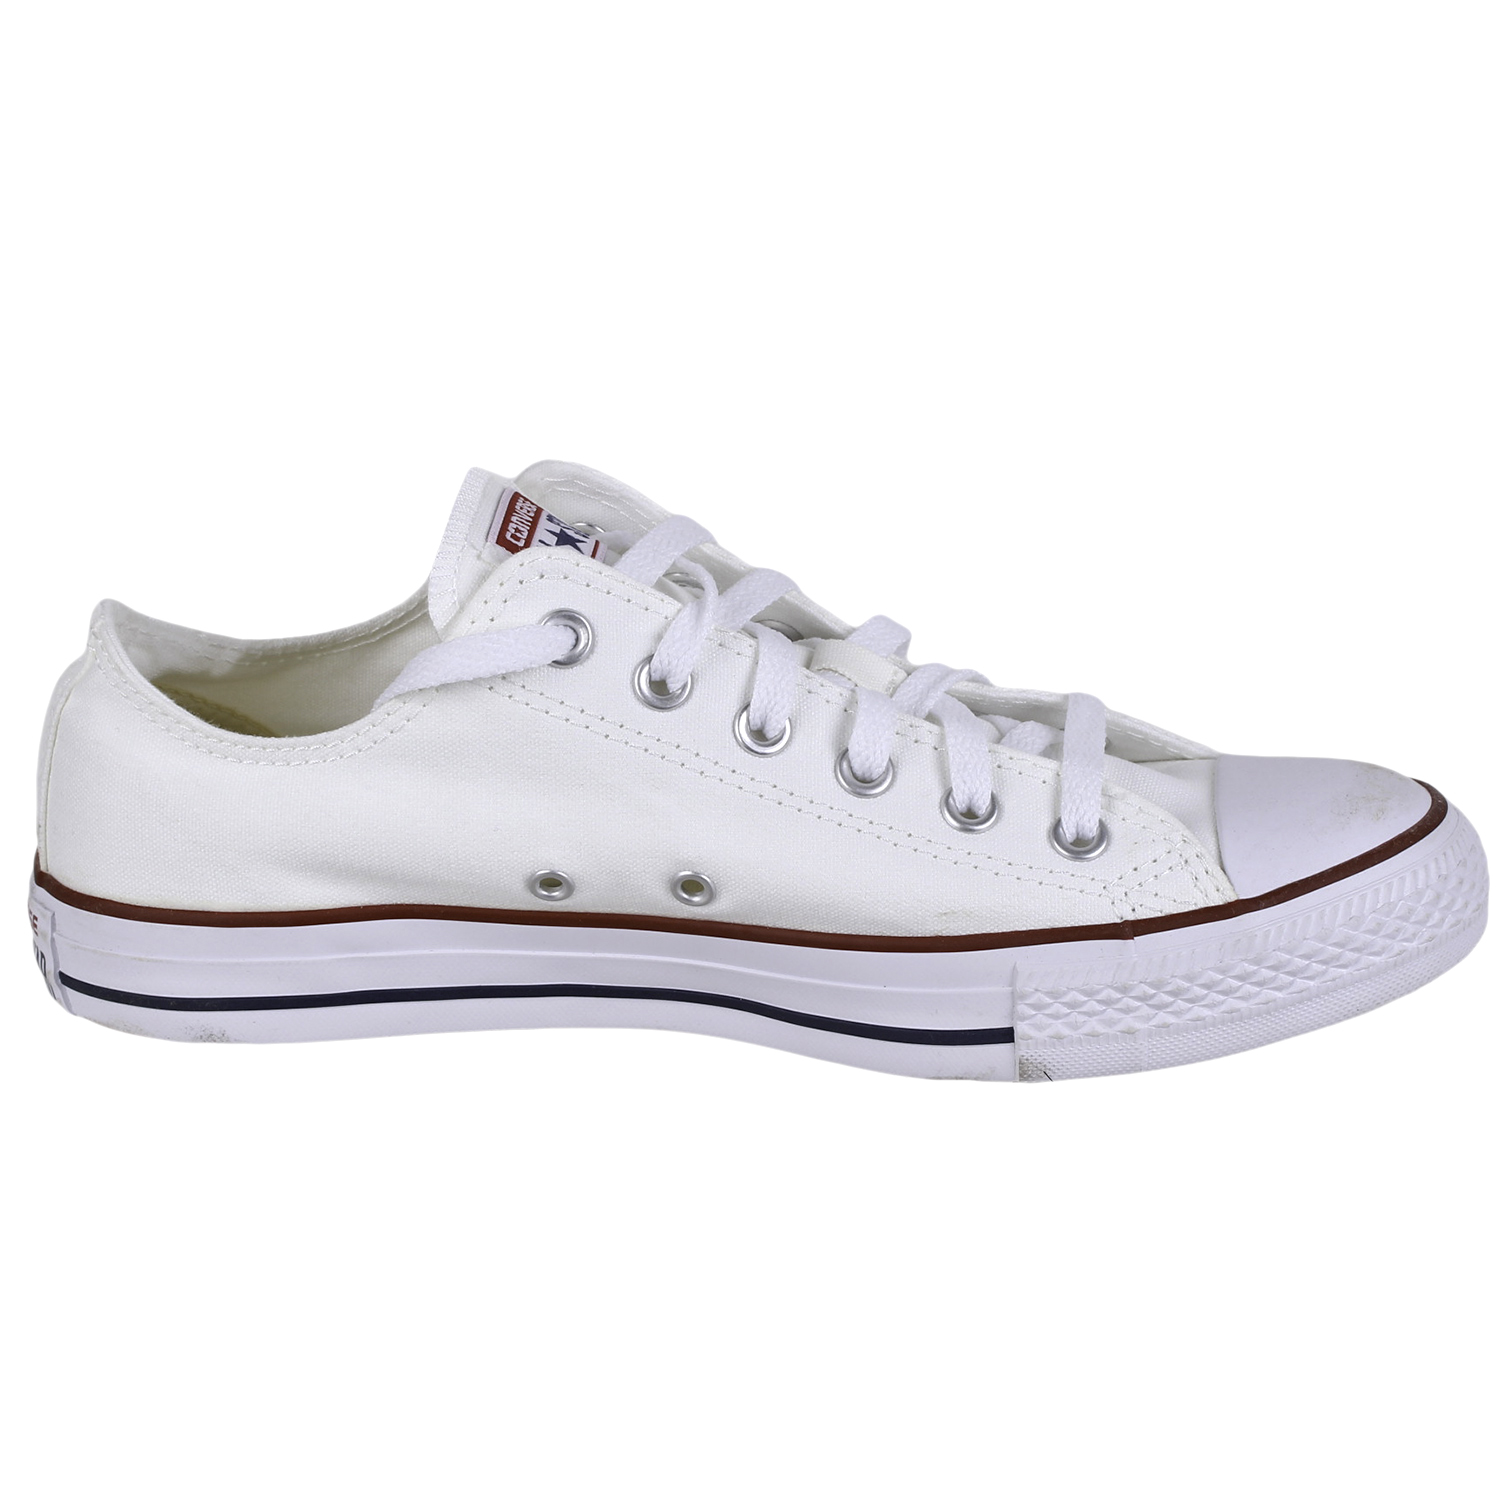 dac4f5d7e461 Converse Men s All Star Chuck Taylor Lo Top Shoes M7652 Optical White size 8